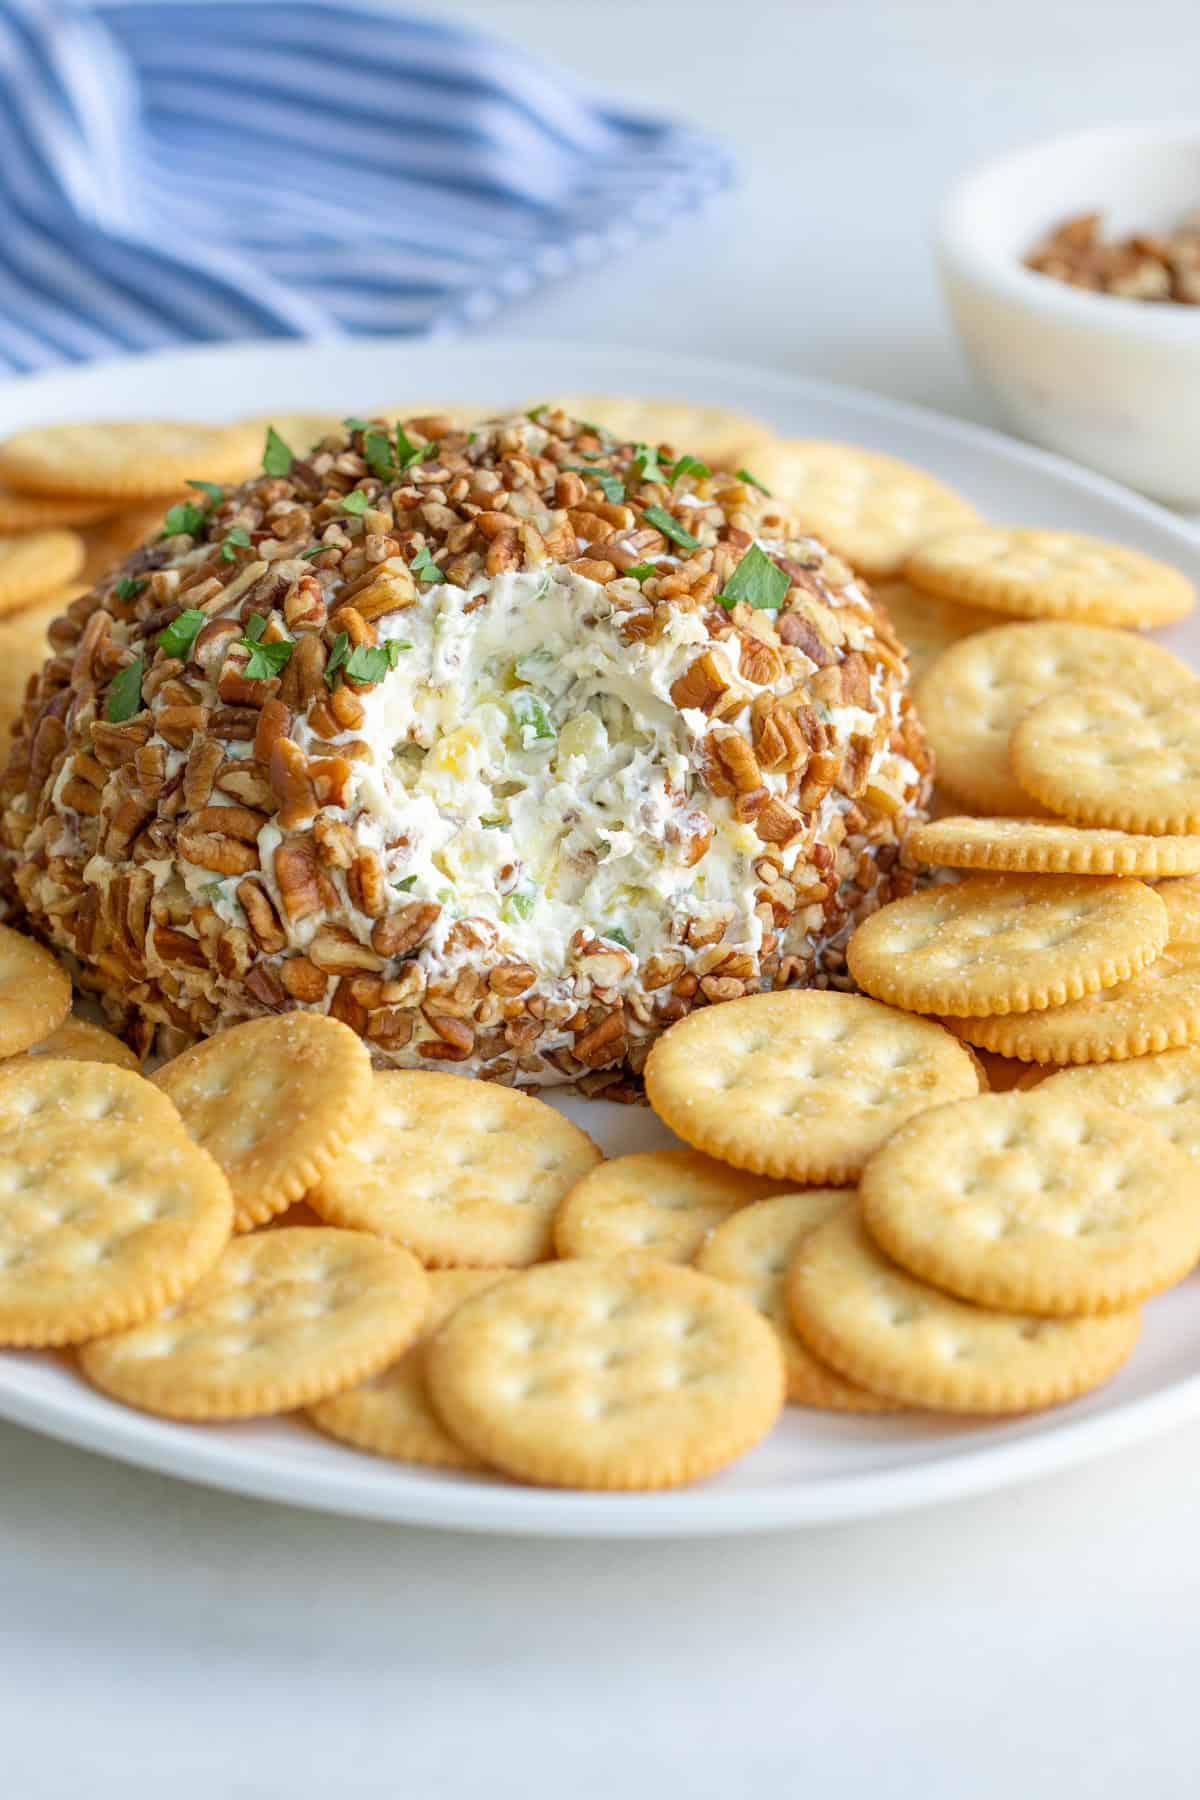 Closeup view of a pineapple cheese ball on a serving platter with crackers.